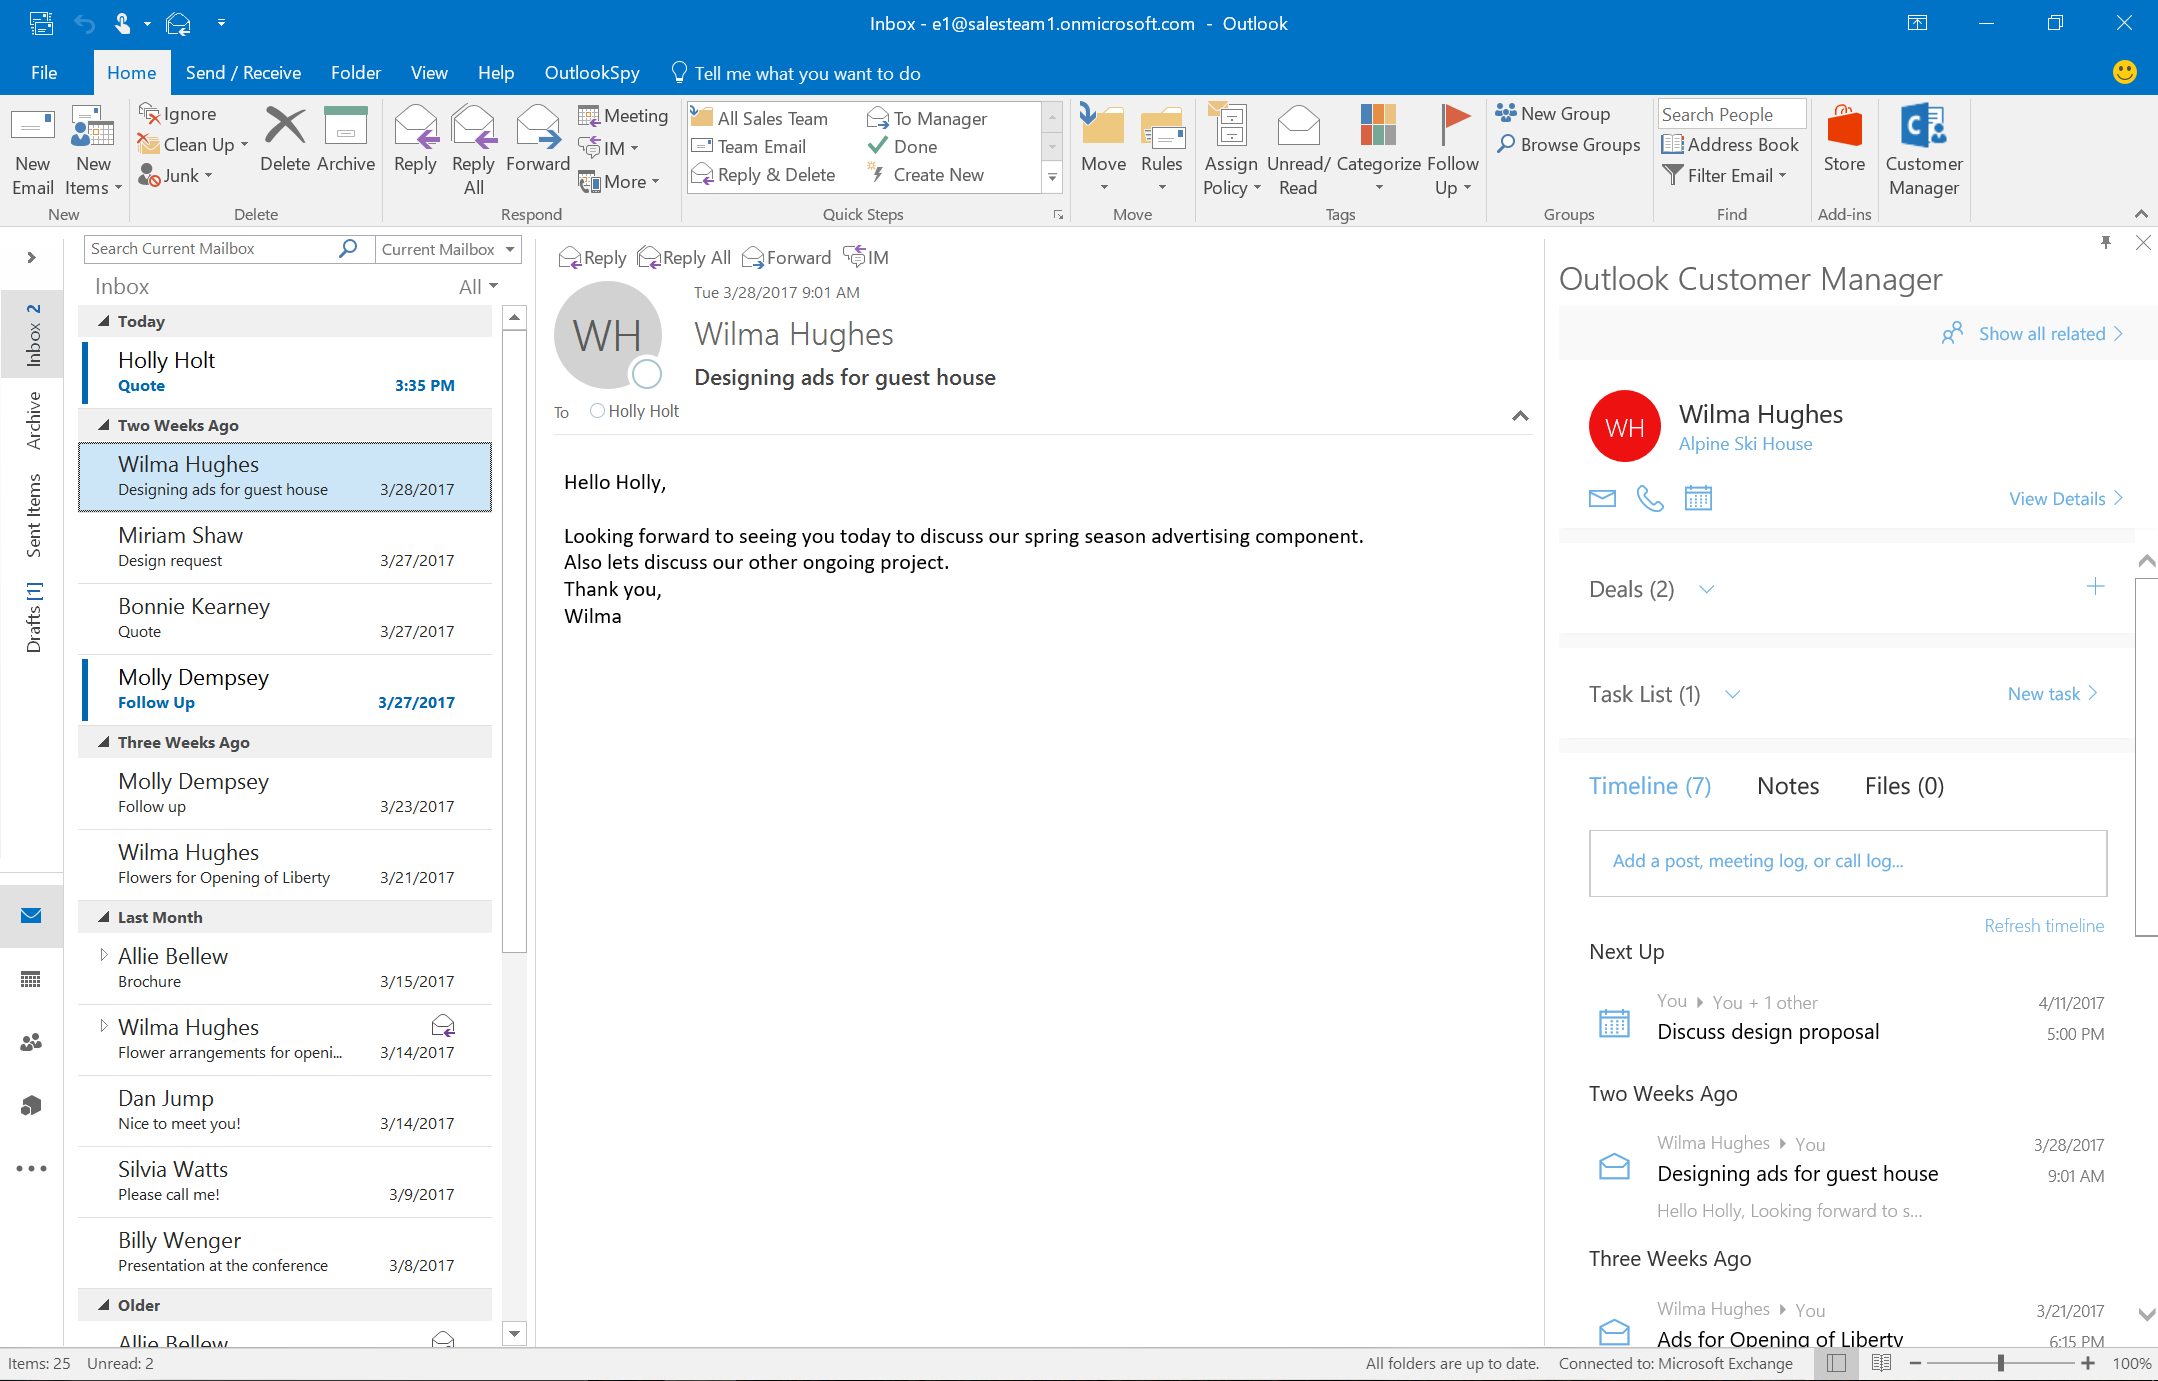 Get Started With Outlook Customer Manager - Office Support